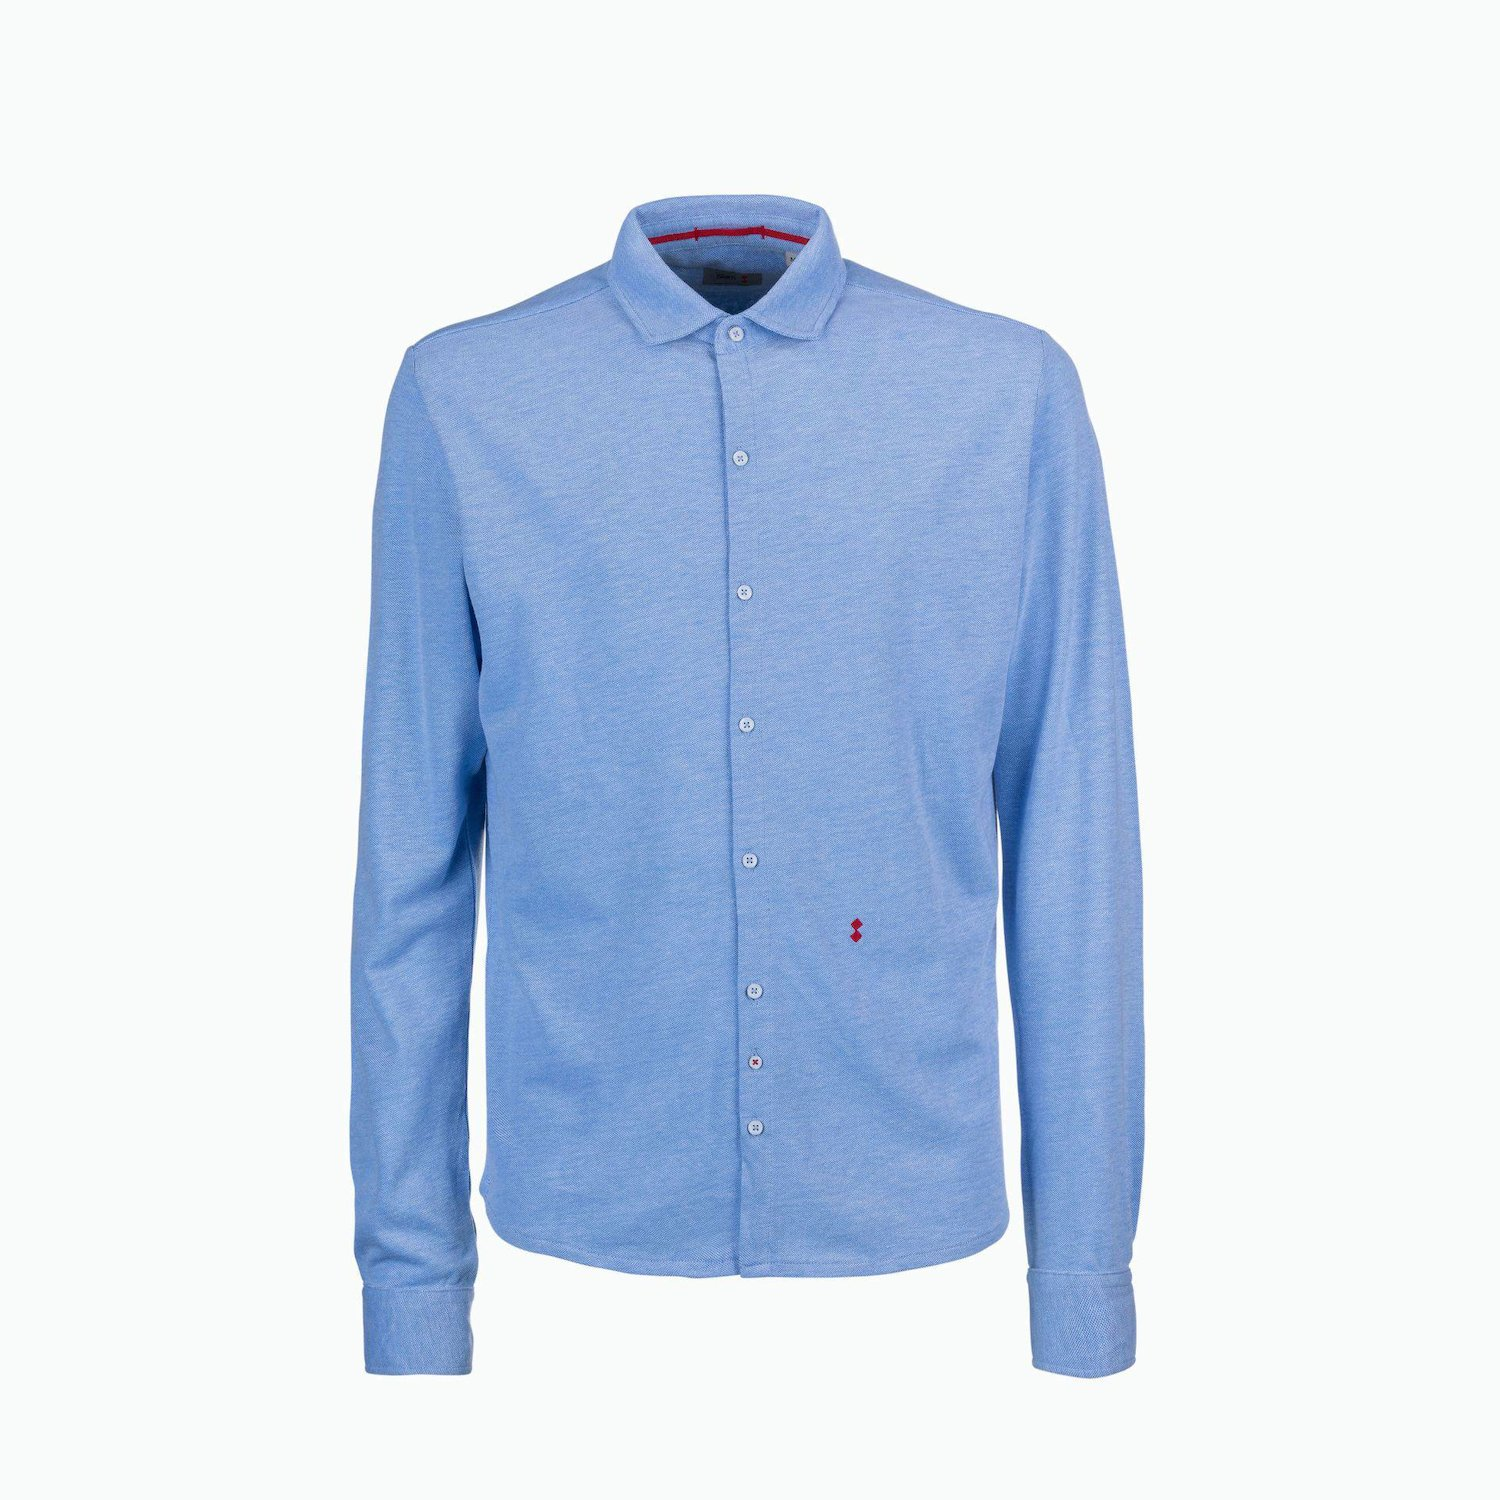 C114 Shirt - Light Blue